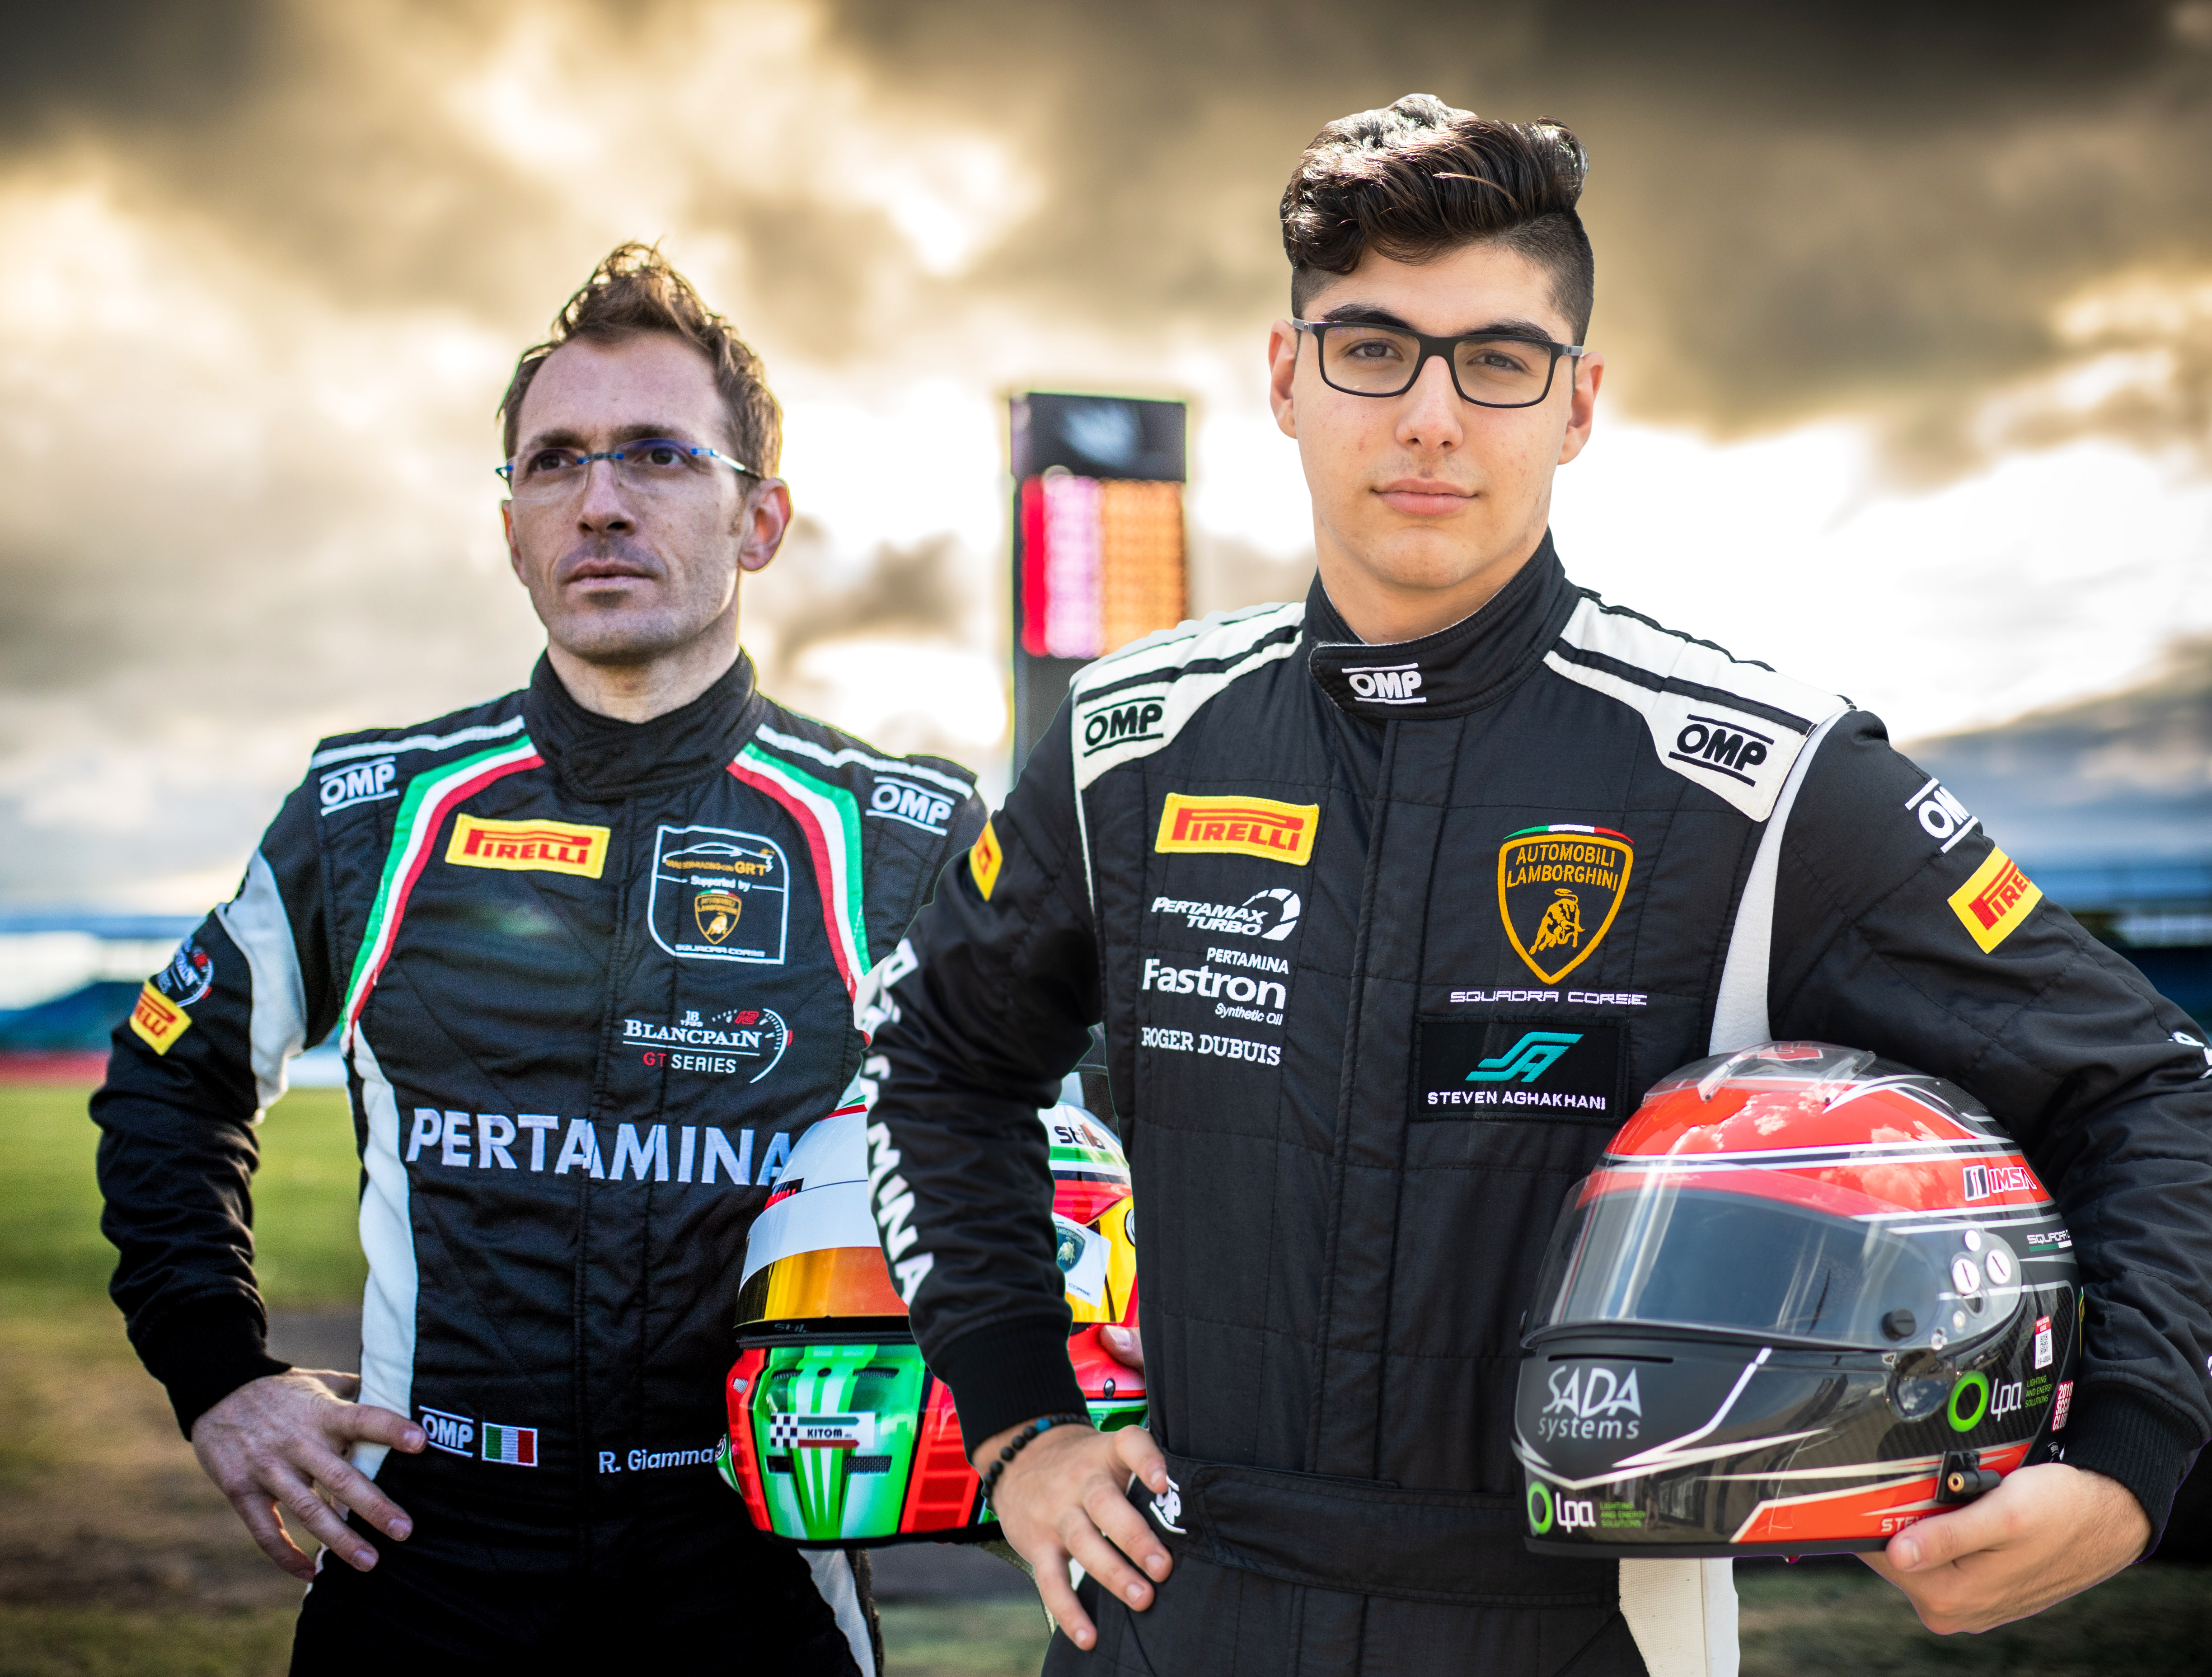 AGHAKHANI COMMITS TO ITALIAN GT ENDURANCE WITH VSR